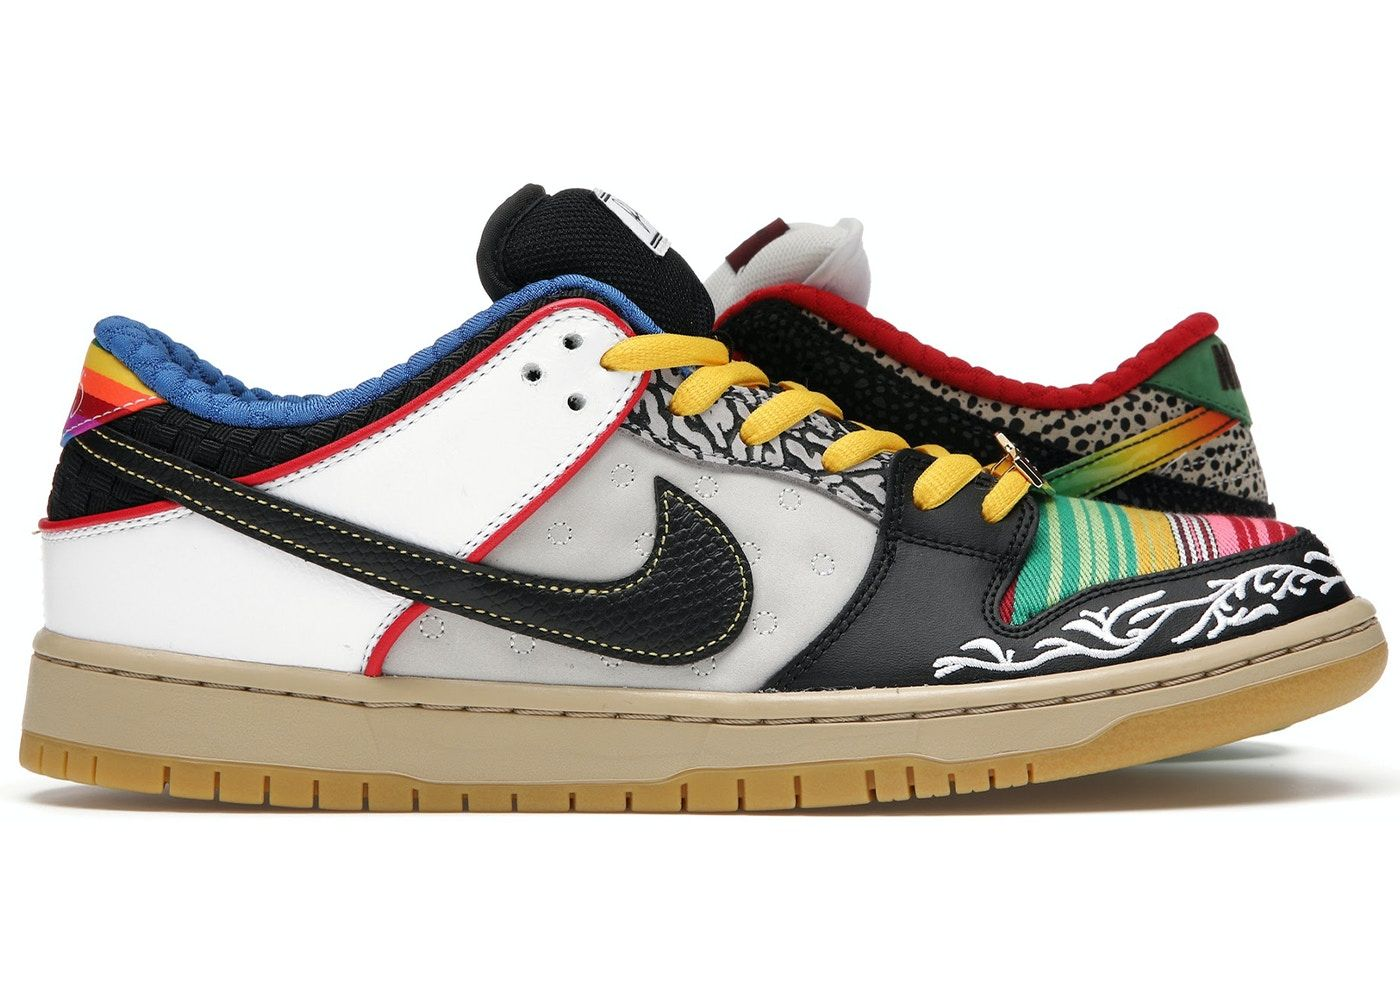 Nike-SB-Dunk-Low-What-The-P-Rod-Product.jpg